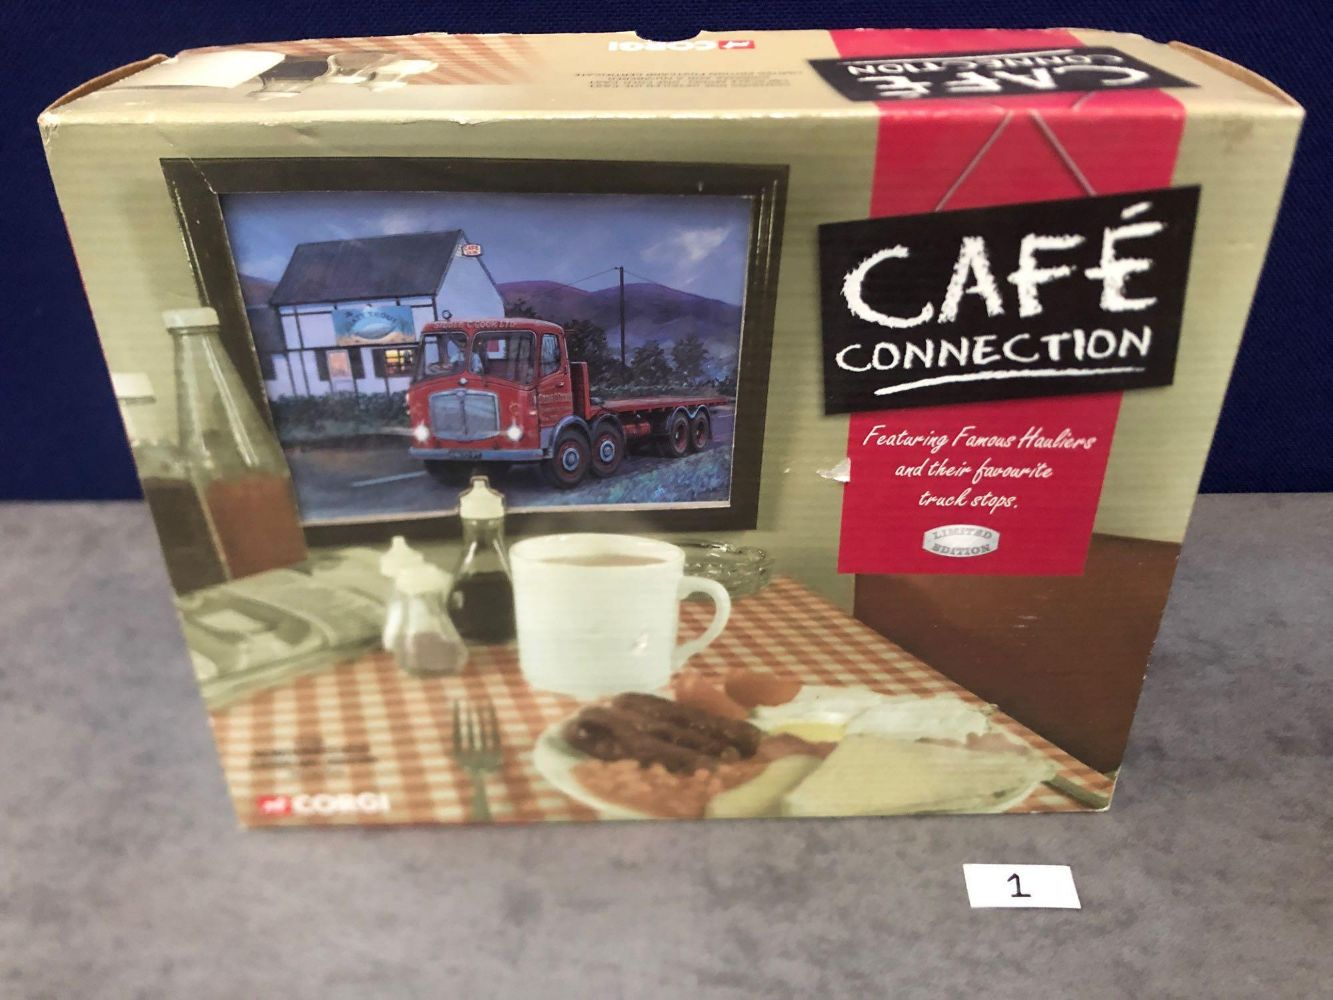 Live and Webcast Collectors' Vintage Toys, Games, Diecast Models and Comics Over 1500 Amazing Lots on Offer Prestige Marques at Amazing Prices